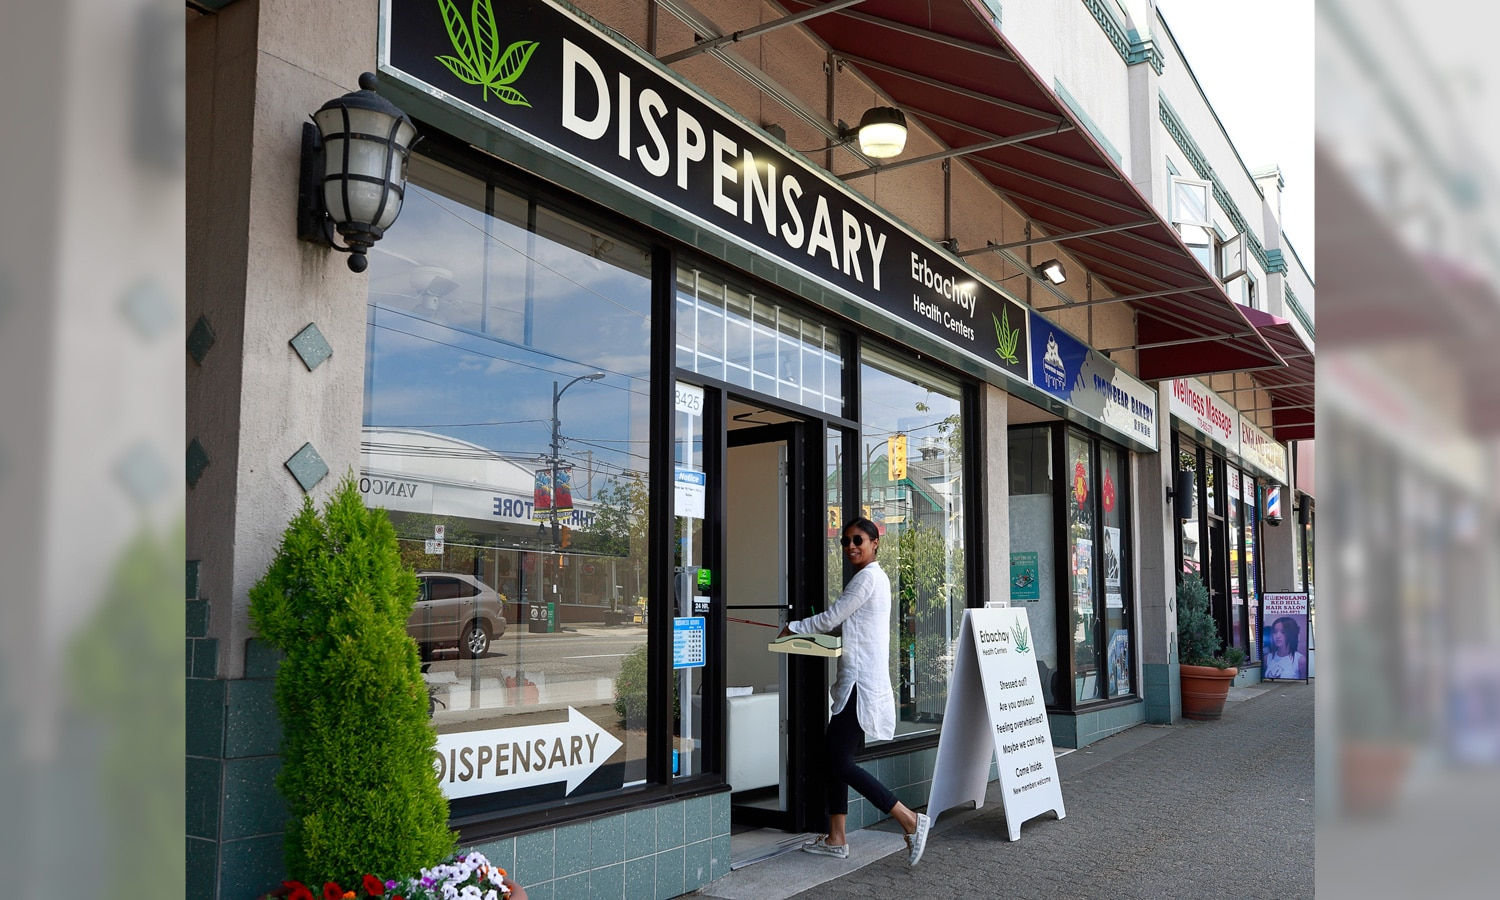 Dispensary Job Market Still Strong Despite Lockdowns